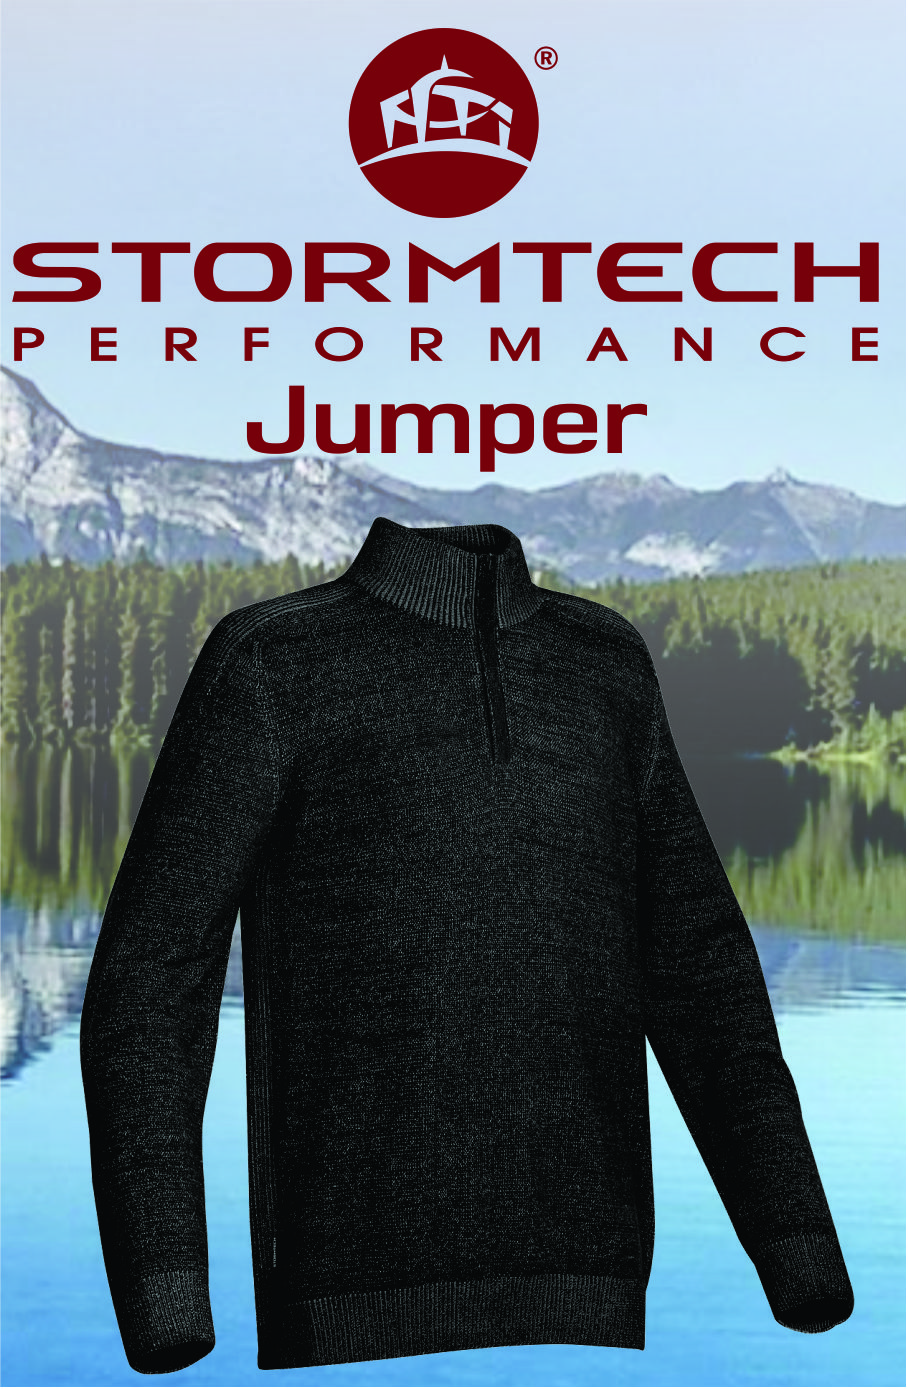 Stormtech Jumpers